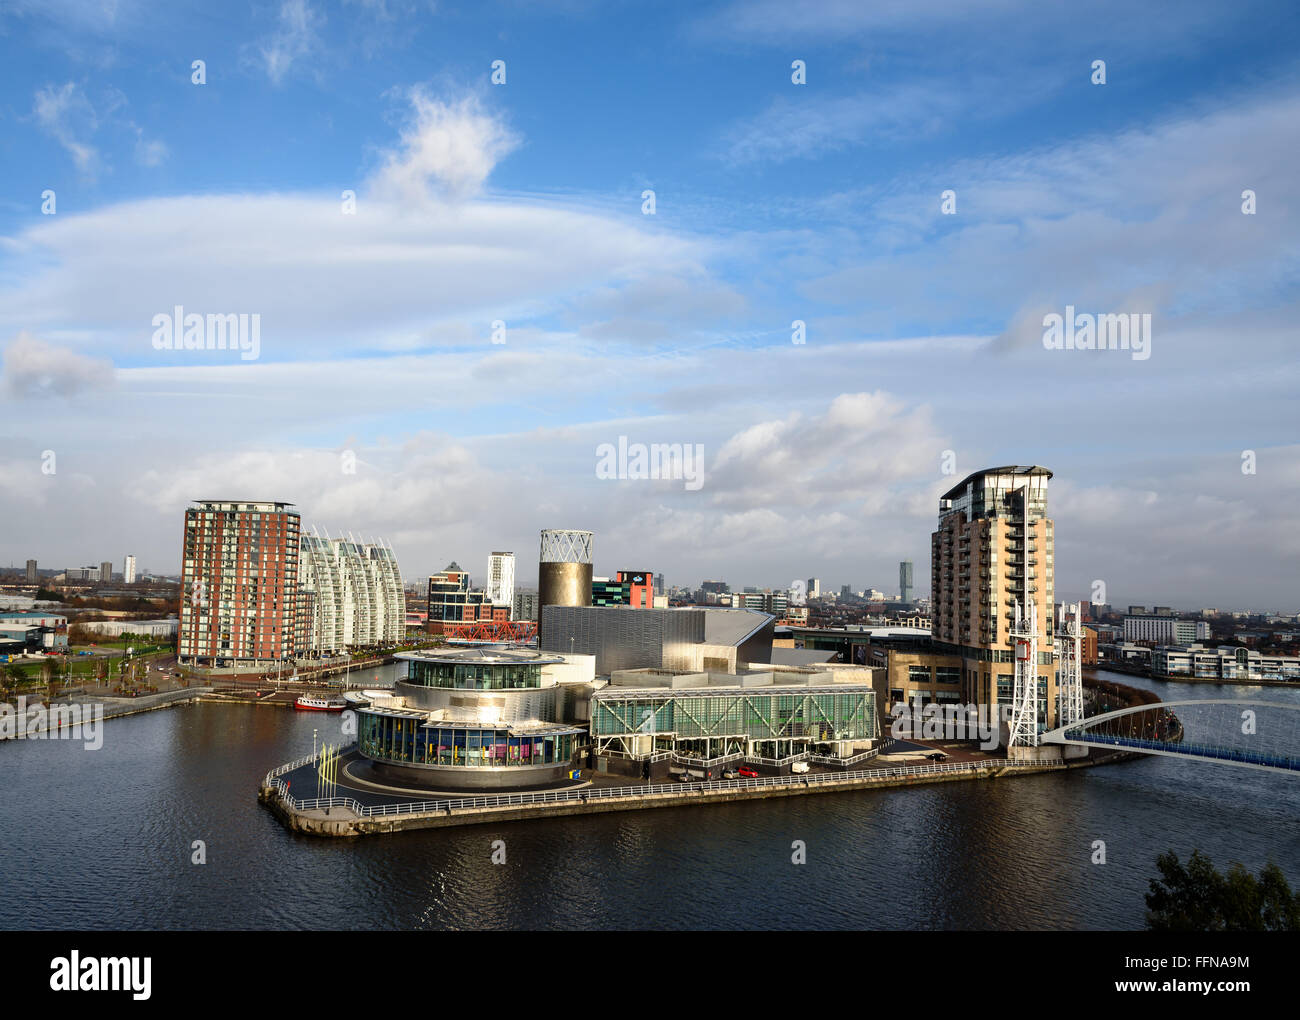 Aerial view of media city, Lowery theater at Salford Quays, Manchester, England. - Stock Image